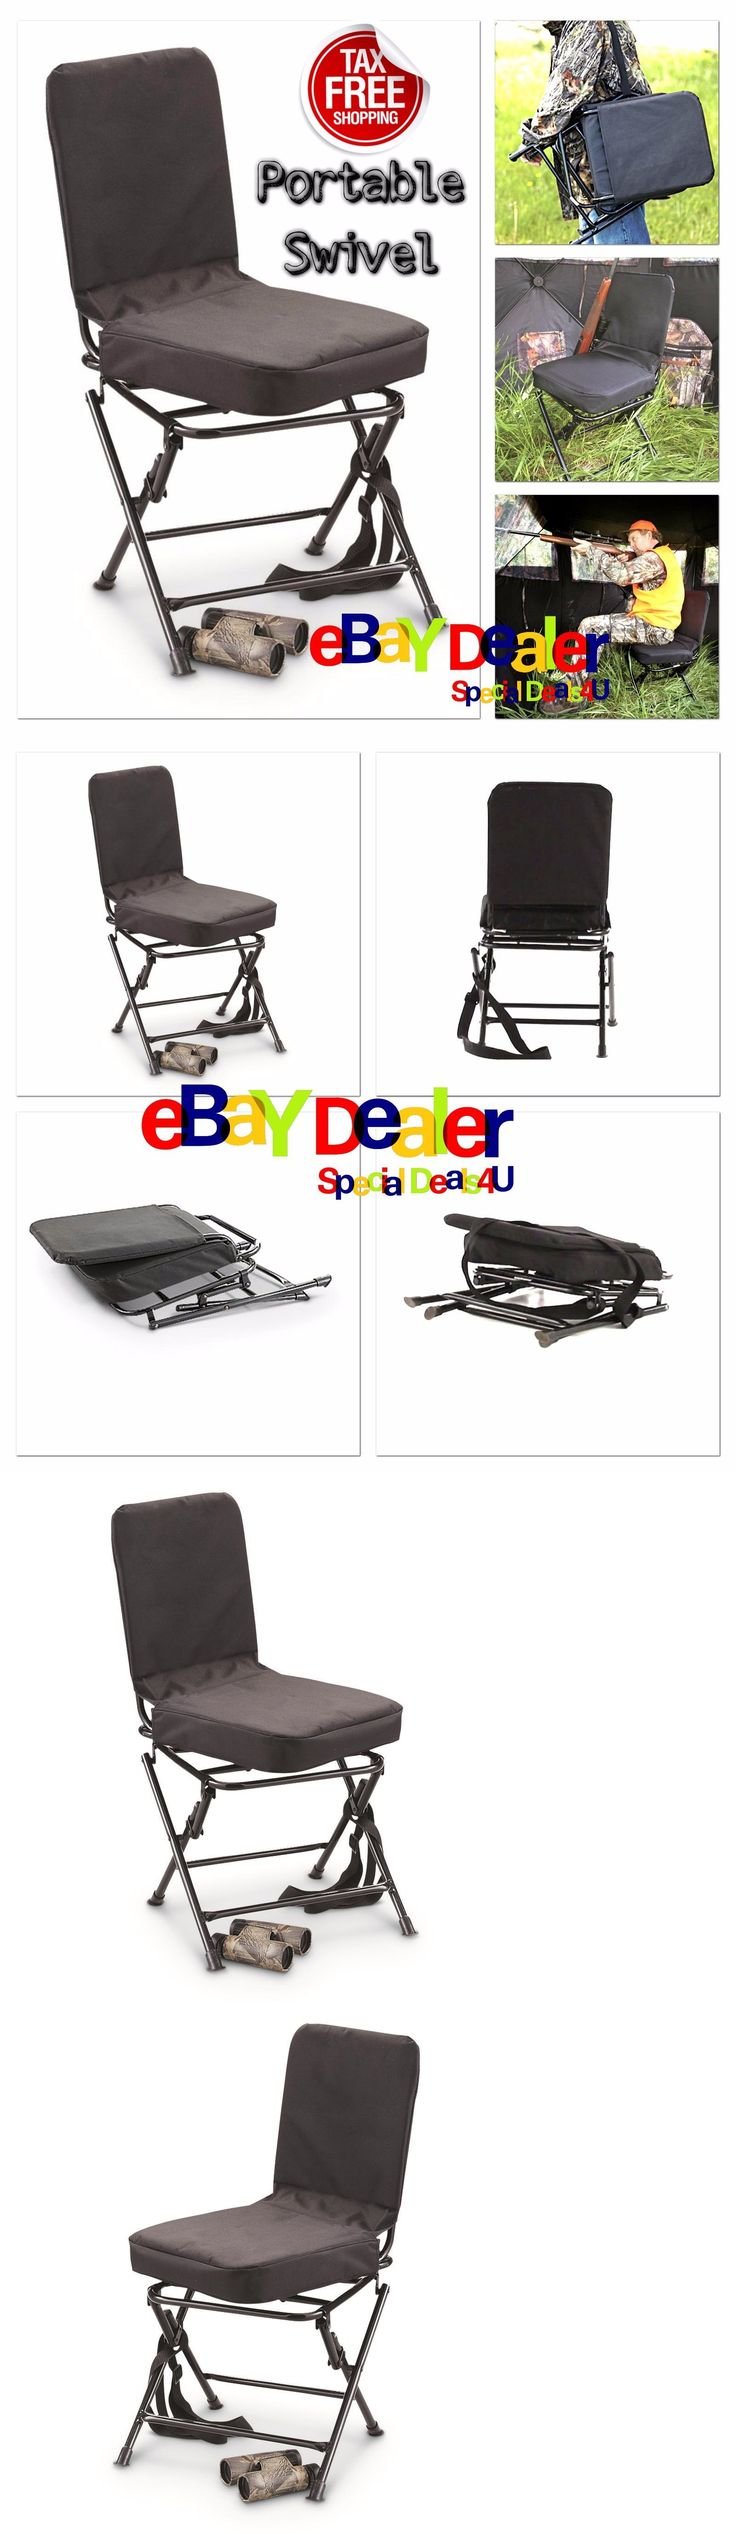 Bow hunting chair - Seats And Chairs 52507 Portable Swivel Hunting Chair Folding Deer Stool Turkey Padded Steel Carry